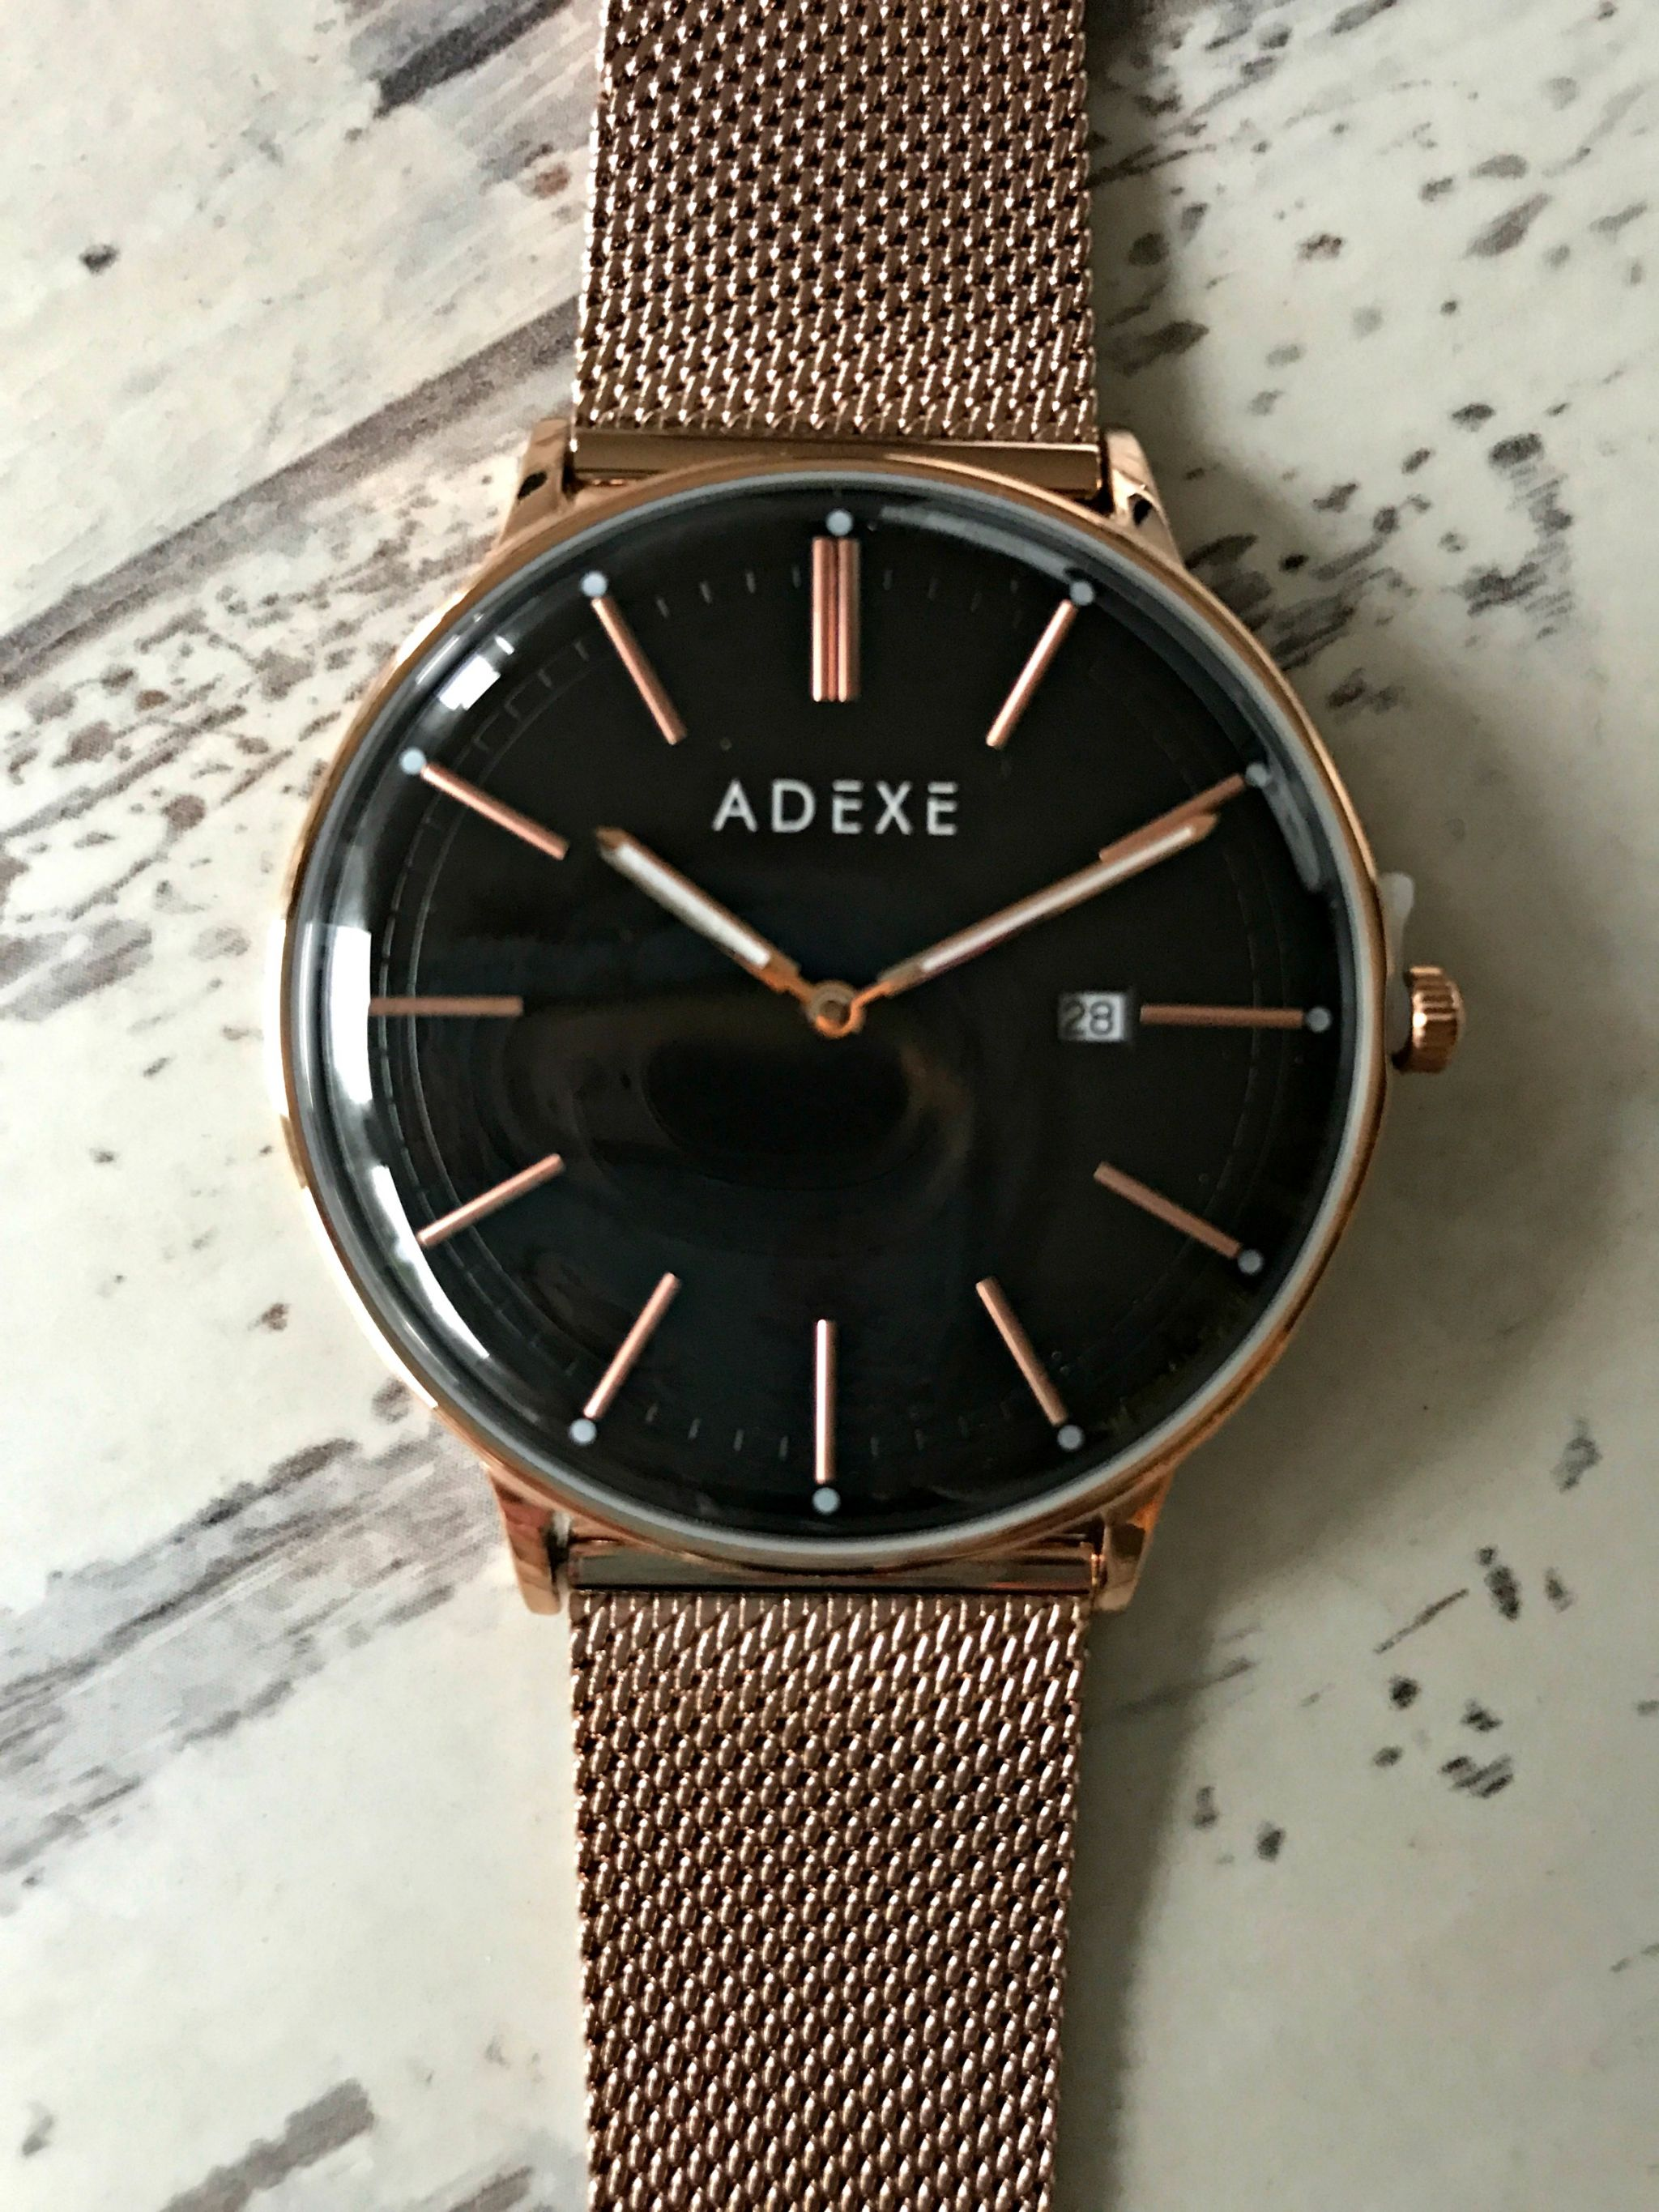 Meek Grande Rosegold watch from Adexe London